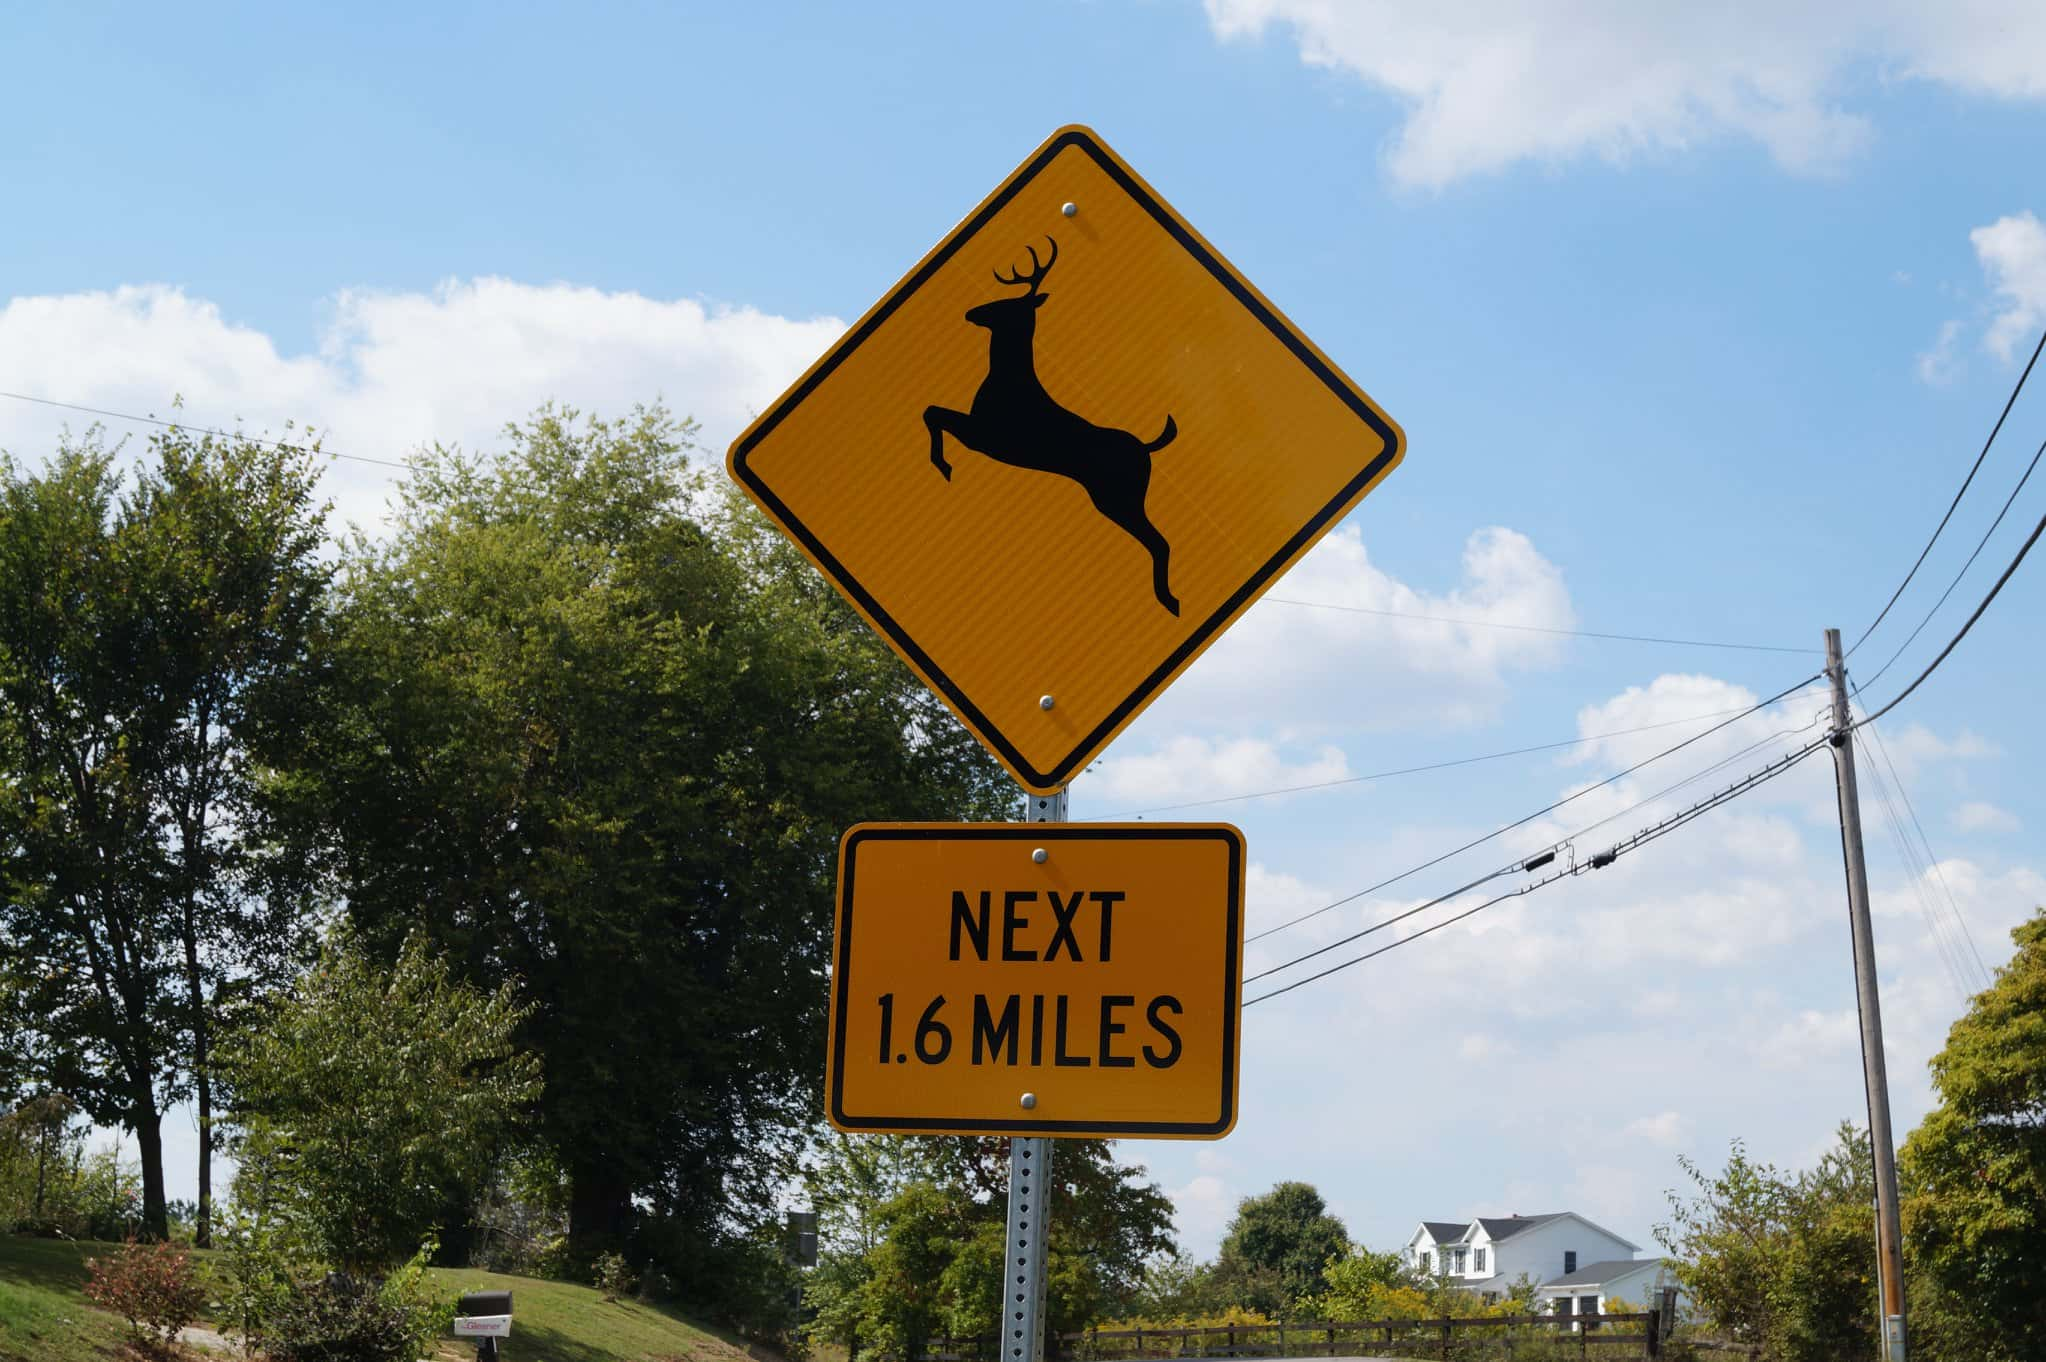 Kytc Warning Drivers About Deer Related Accidents Wkdz Radio